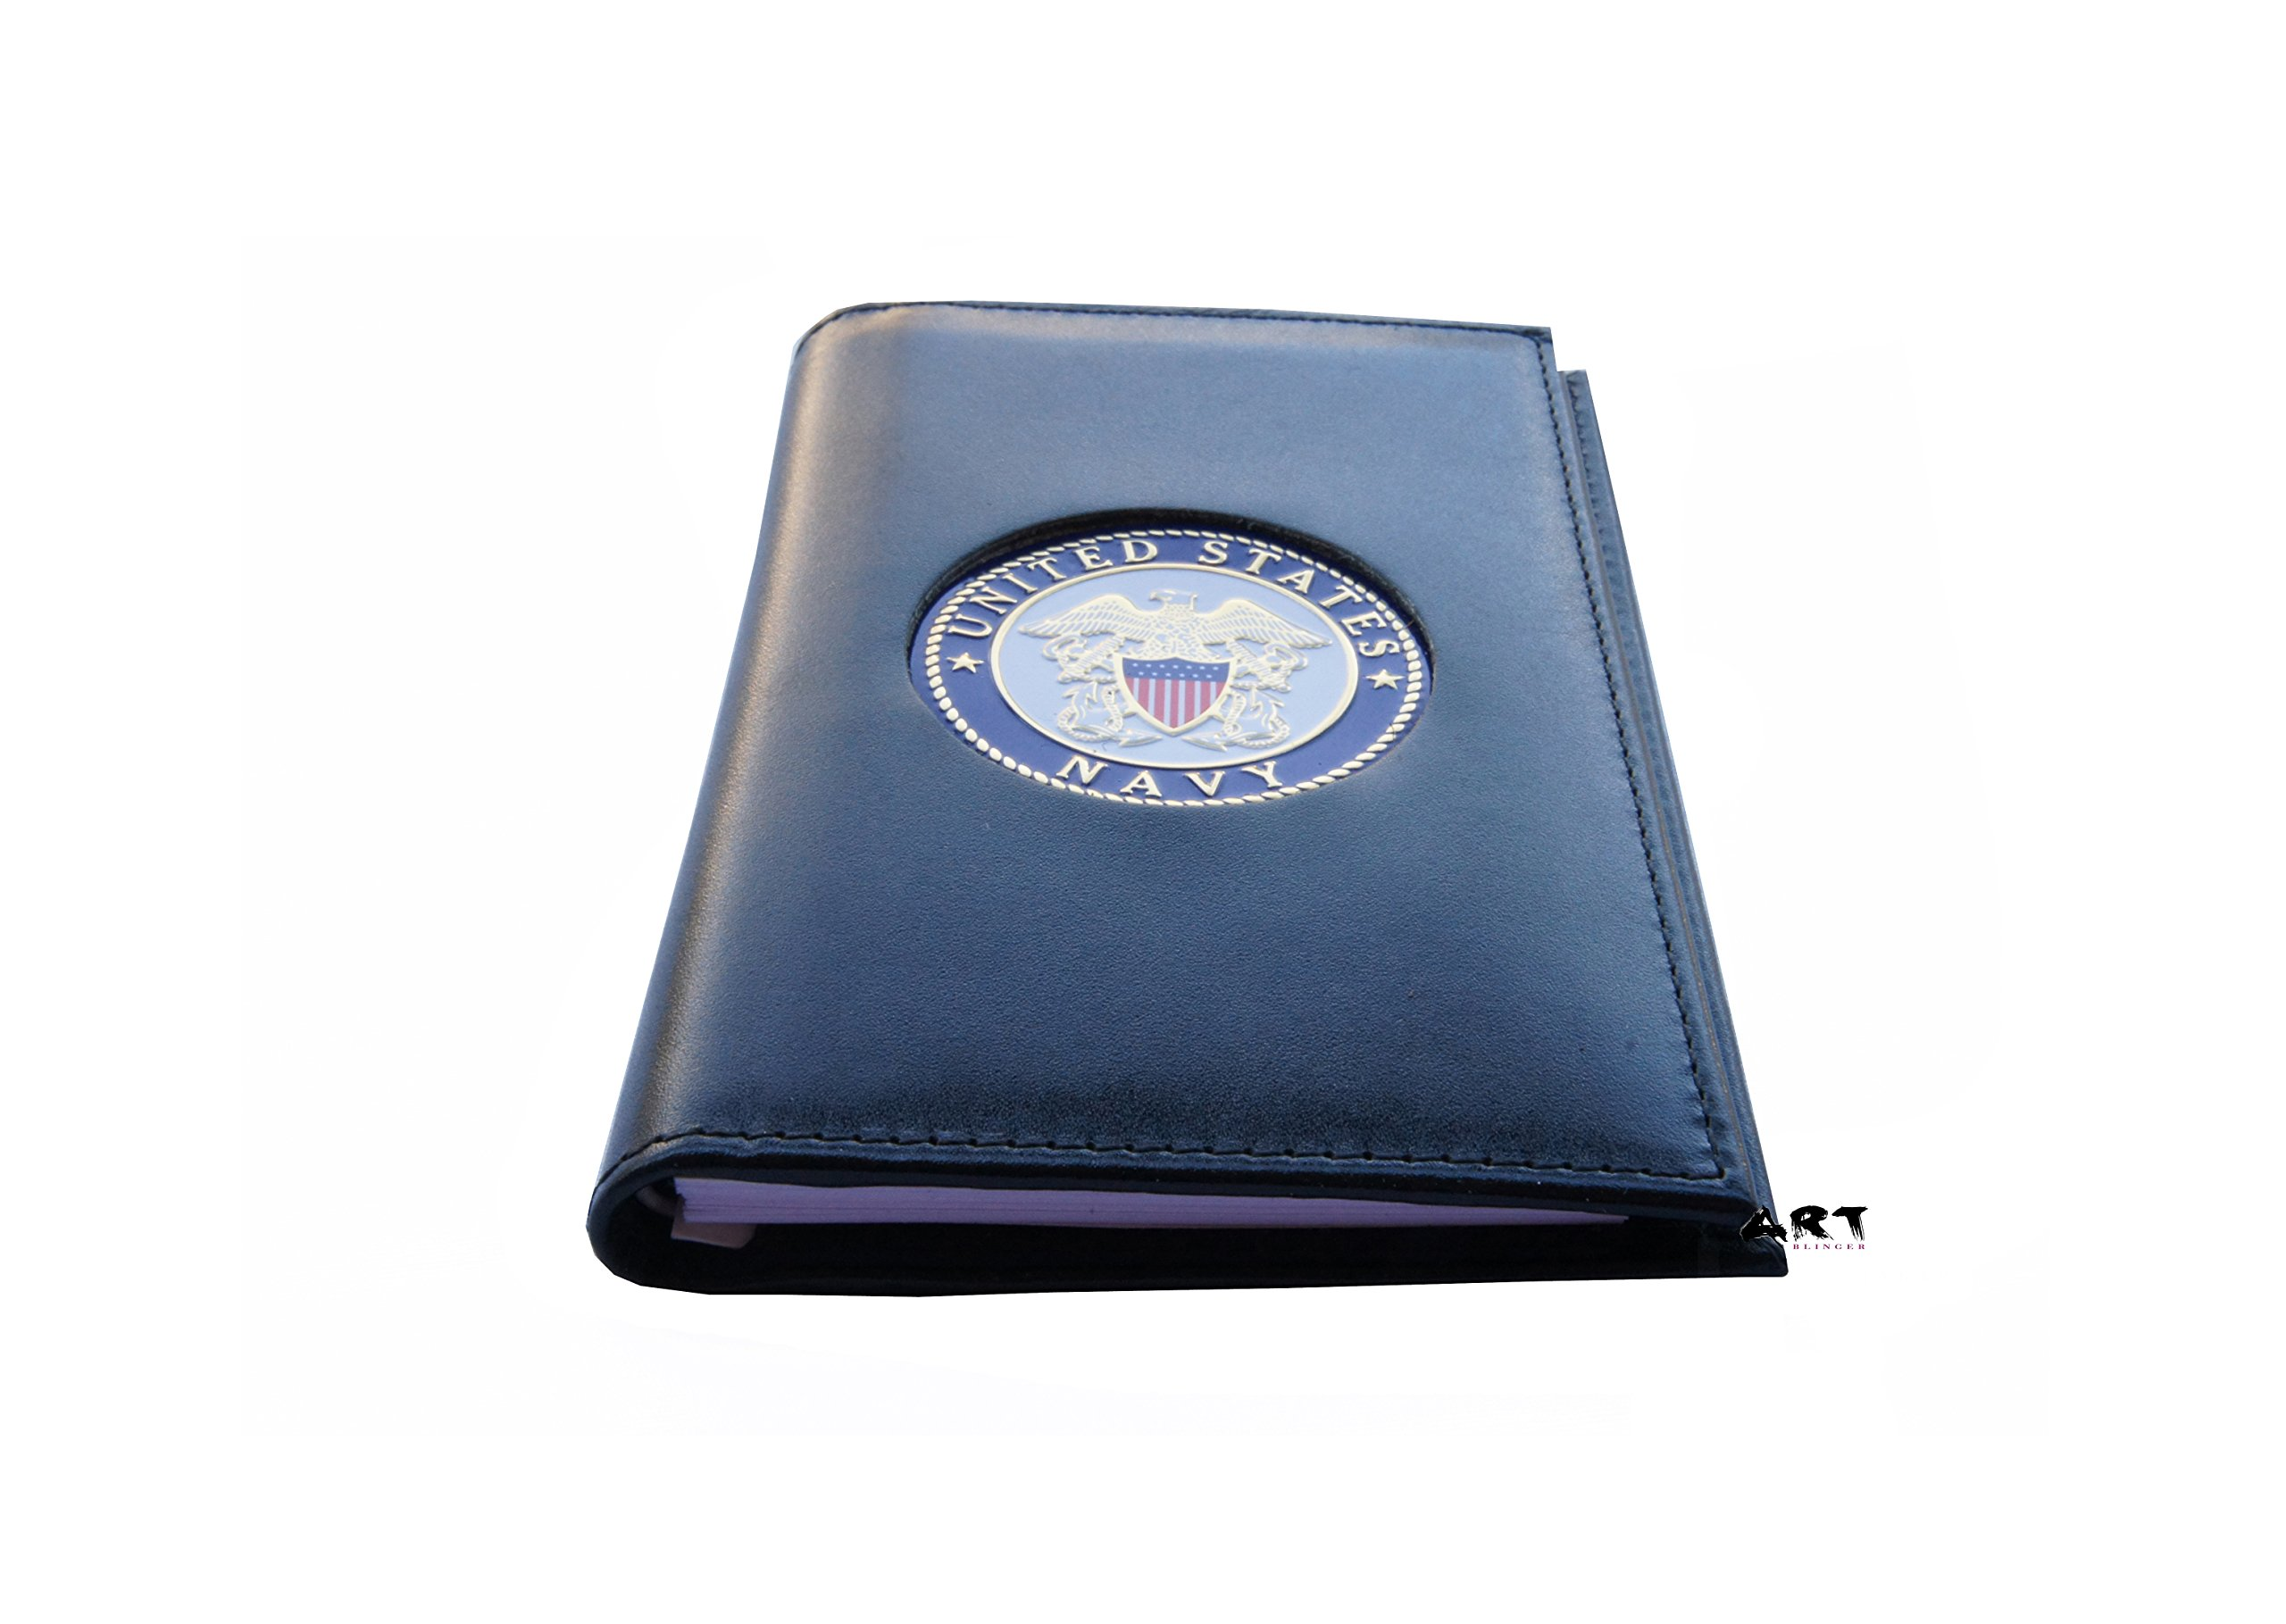 Spiral Notebook Padfolio with Medallion, Official US NAVY Note Pad Cover - 3'' x 5'' by Officially Licensed Authorized Military Wallets